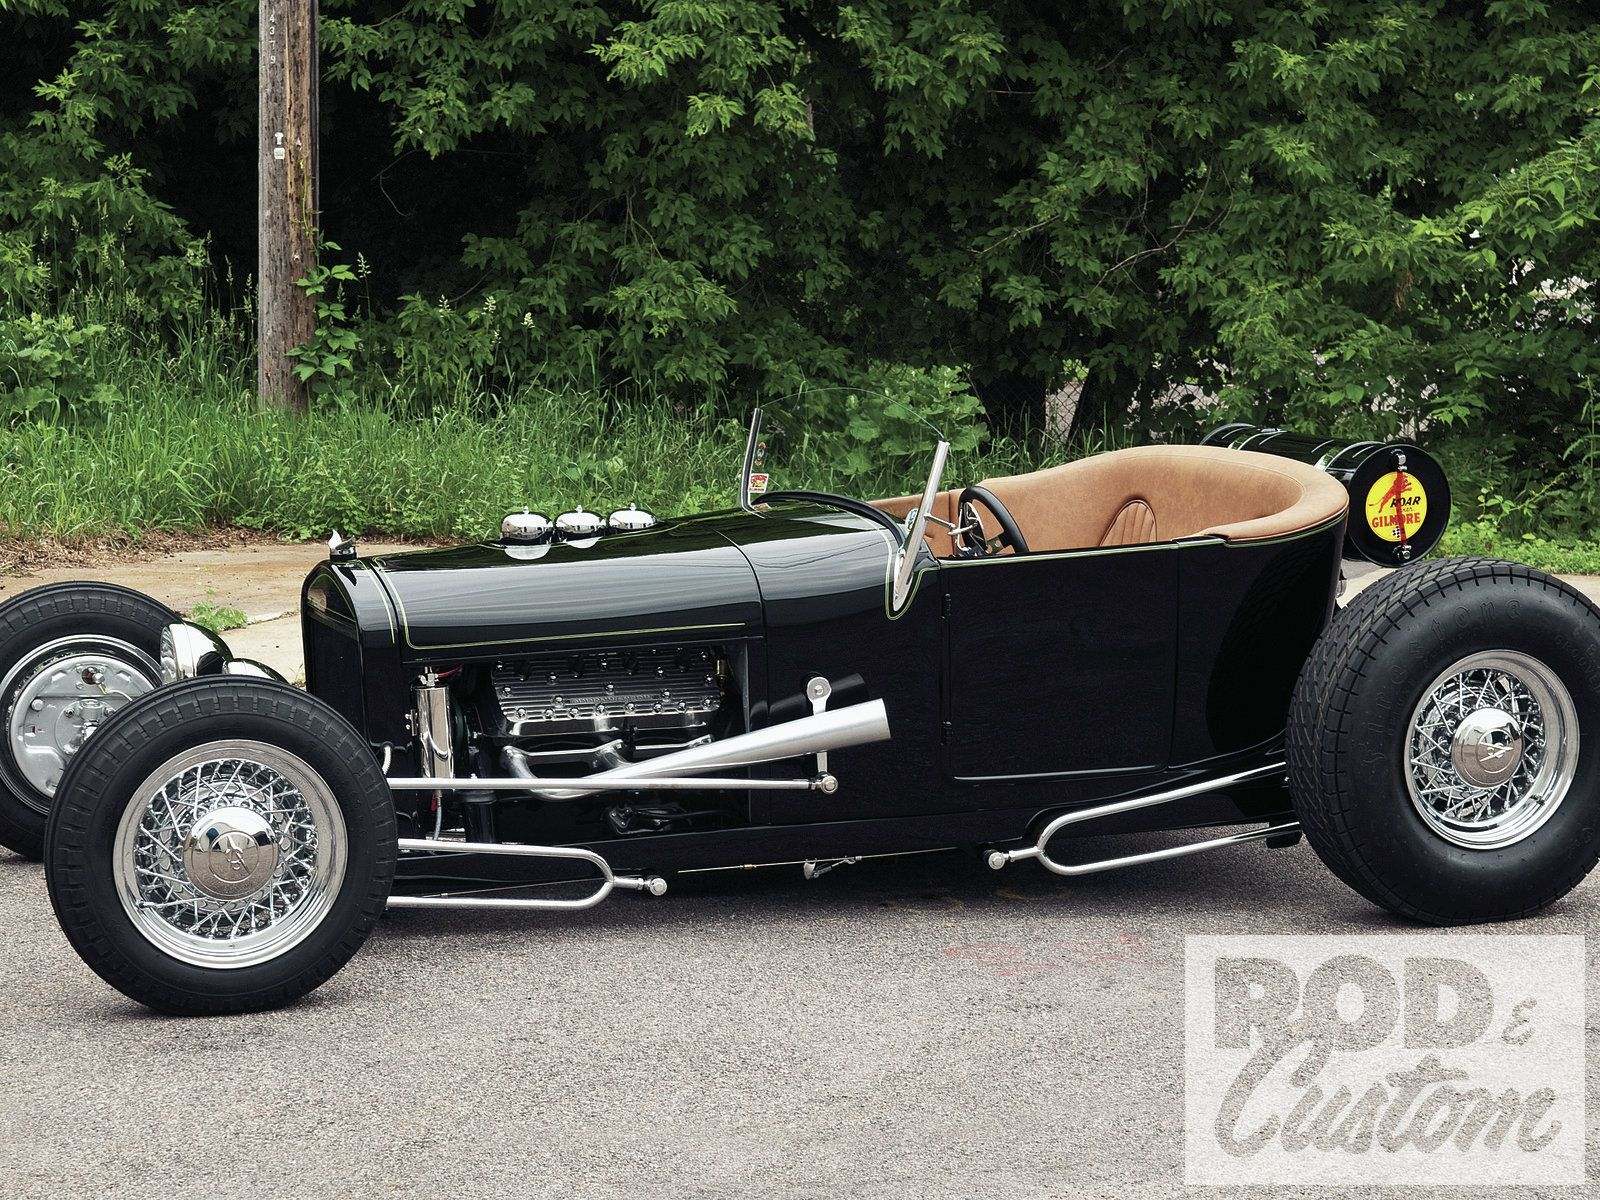 1927 Ford Hot Rod What A Blast It Must Be Driving This Around Town Hot Rods Cars Hot Rods Ford Hot Rod